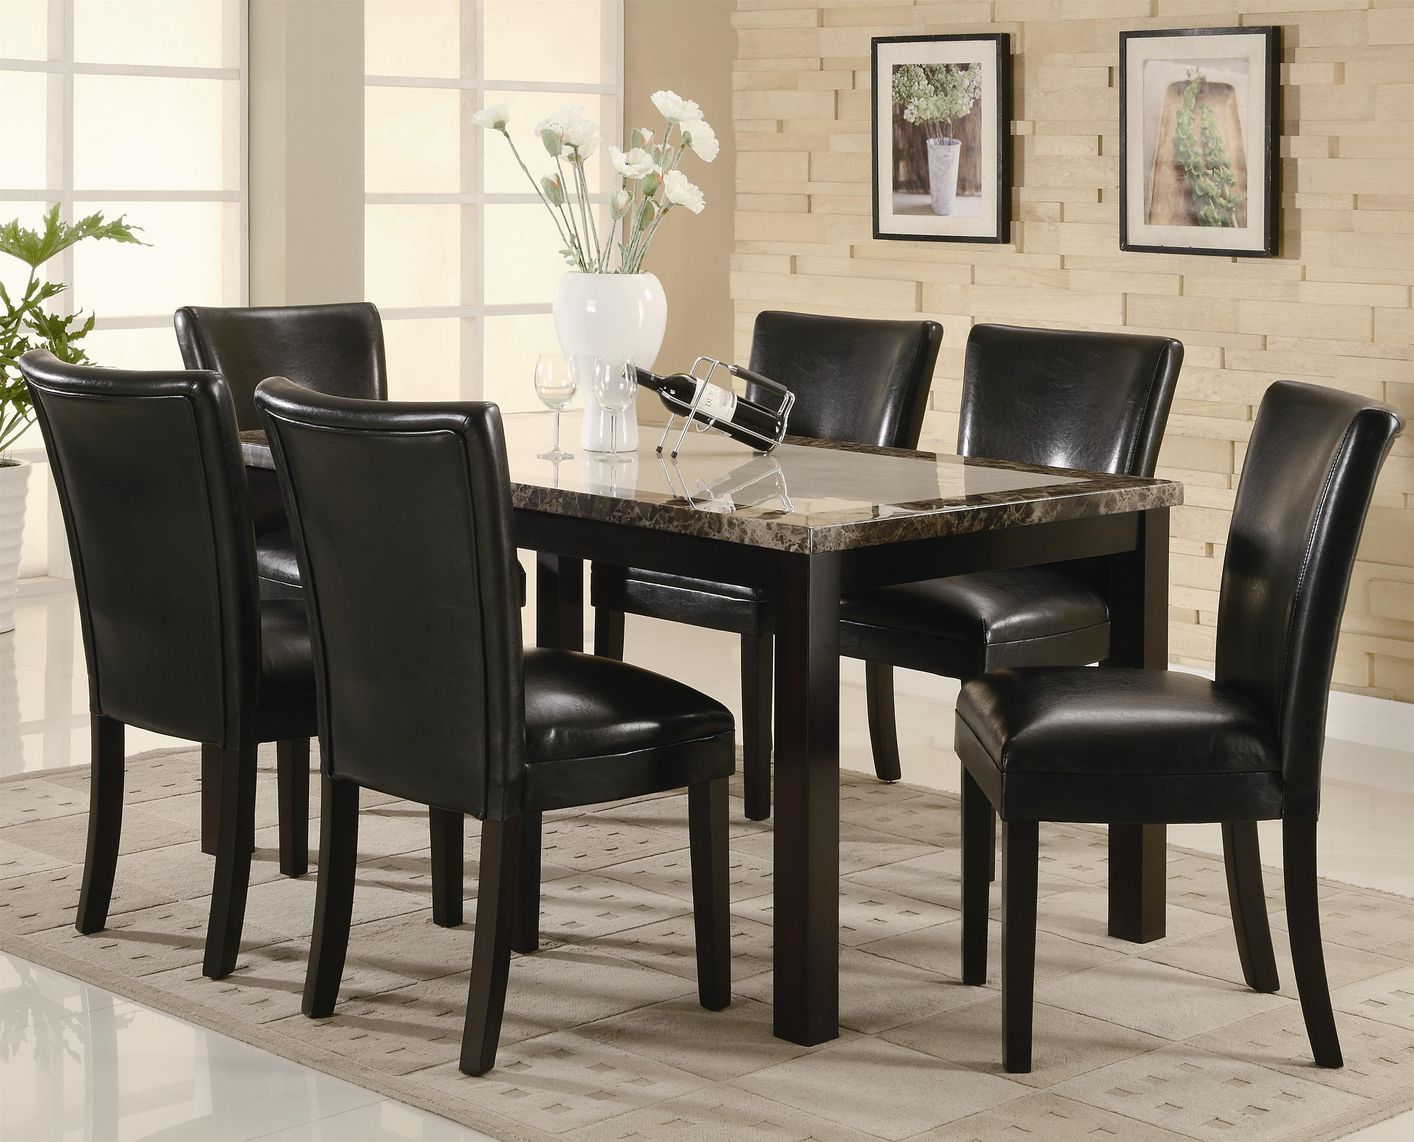 Carter dark brown wood and marble dining table set steal for Set de table matelasse